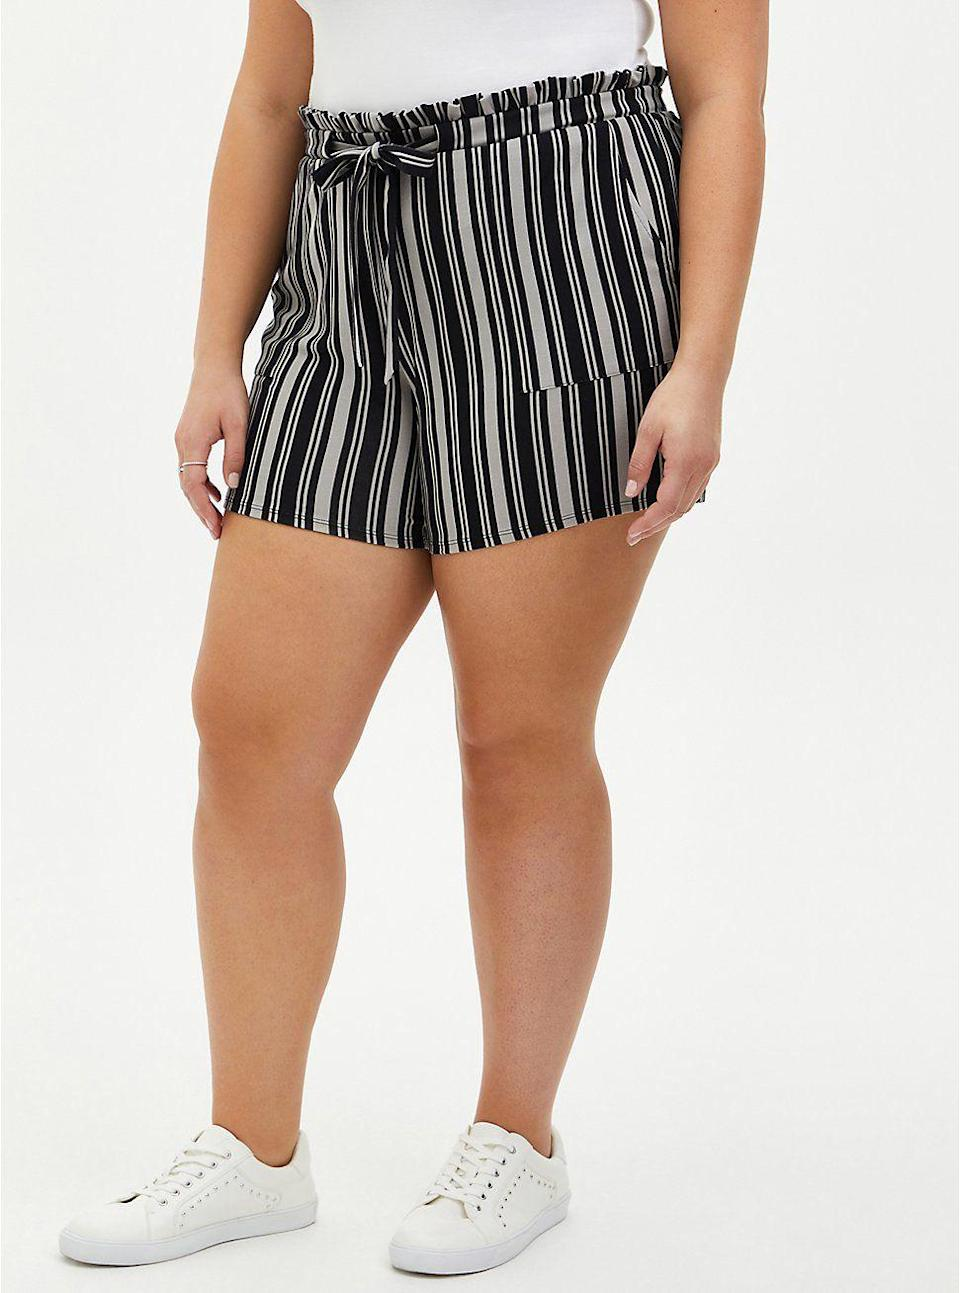 """<p>torrid.com</p><p><strong>$34.12</strong></p><p><a href=""""https://go.redirectingat.com?id=74968X1596630&url=https%3A%2F%2Fwww.torrid.com%2Fproduct%2Fmulti-stripe-ponte-paperbag-short%2F14598908.html&sref=https%3A%2F%2Fwww.thepioneerwoman.com%2Ffashion-style%2Fg37083925%2Fbest-plus-size-shorts%2F"""" rel=""""nofollow noopener"""" target=""""_blank"""" data-ylk=""""slk:Shop Now"""" class=""""link rapid-noclick-resp"""">Shop Now</a></p><p>These striped paper bag shorts are so versatile. You can easily dress them up with fun strappy heels and a cute blouse or go more casual with a tee, <a href=""""https://www.thepioneerwoman.com/fashion-style/g33214670/best-jean-jackets-for-women/"""" rel=""""nofollow noopener"""" target=""""_blank"""" data-ylk=""""slk:denim jacket"""" class=""""link rapid-noclick-resp"""">denim jacket</a>, and sneakers. </p>"""